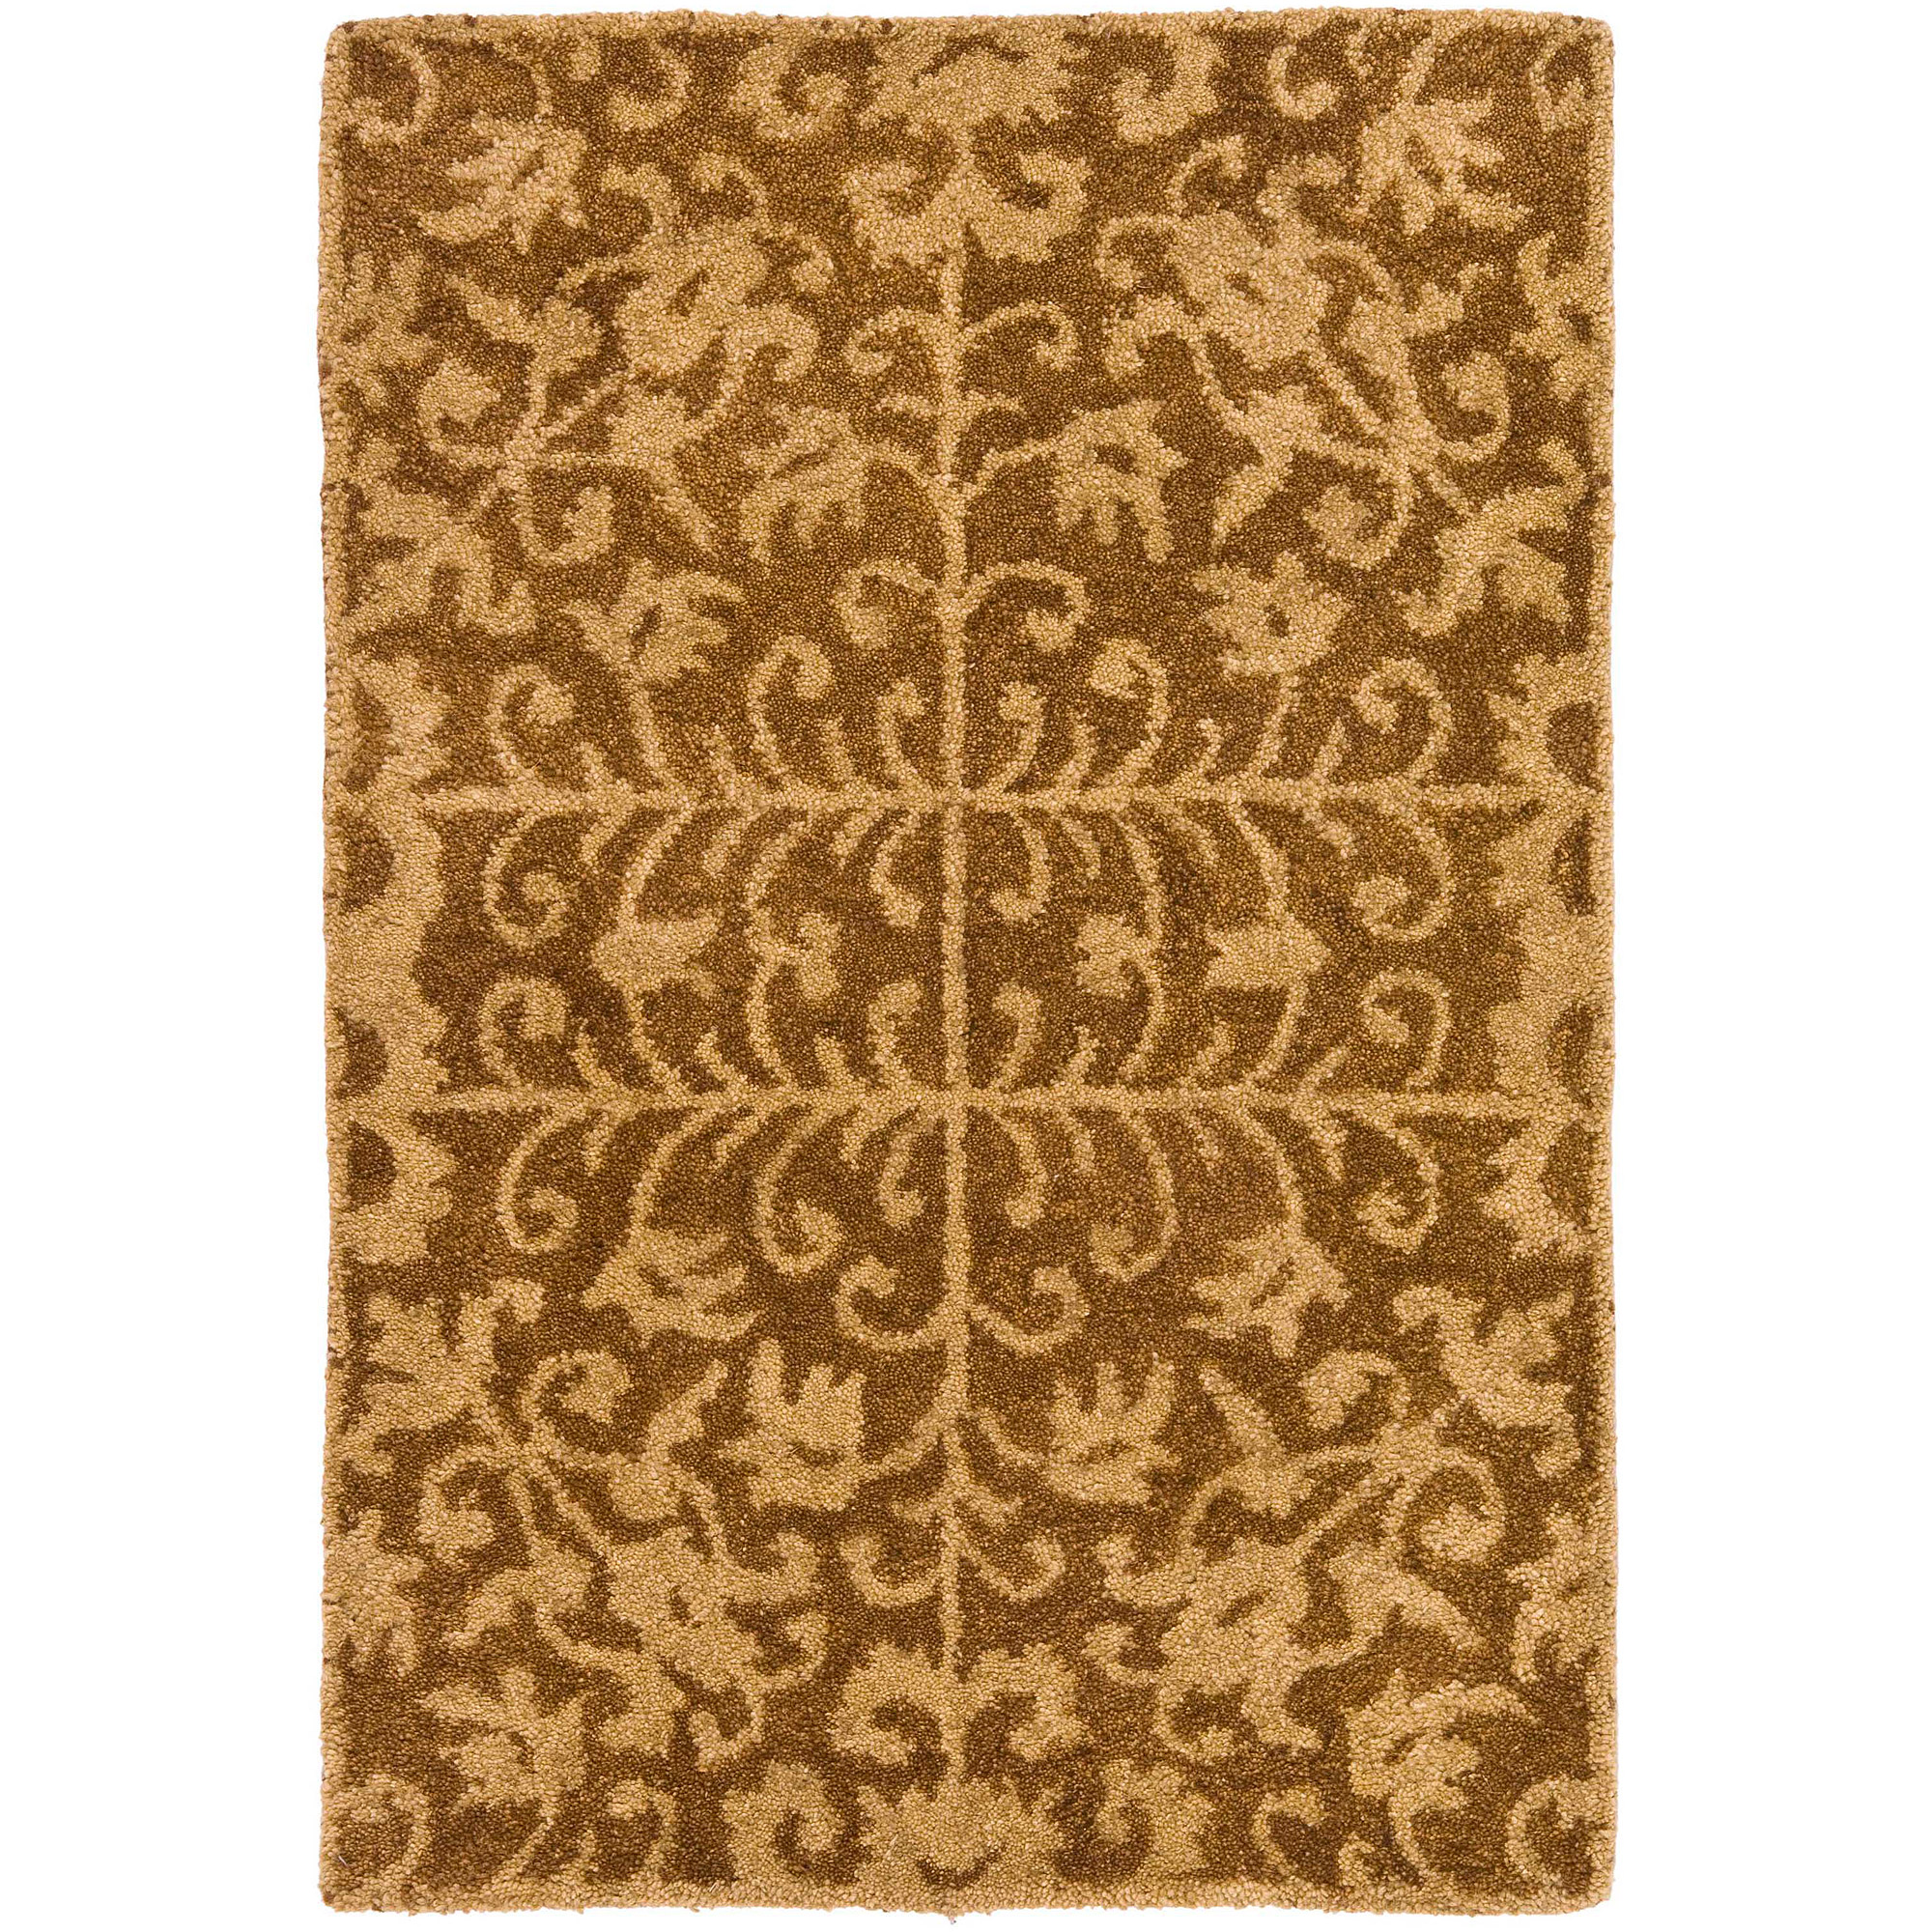 Safavieh Antiquity Richard Hand-Tufted Wool Area Rug, Gold/Beige